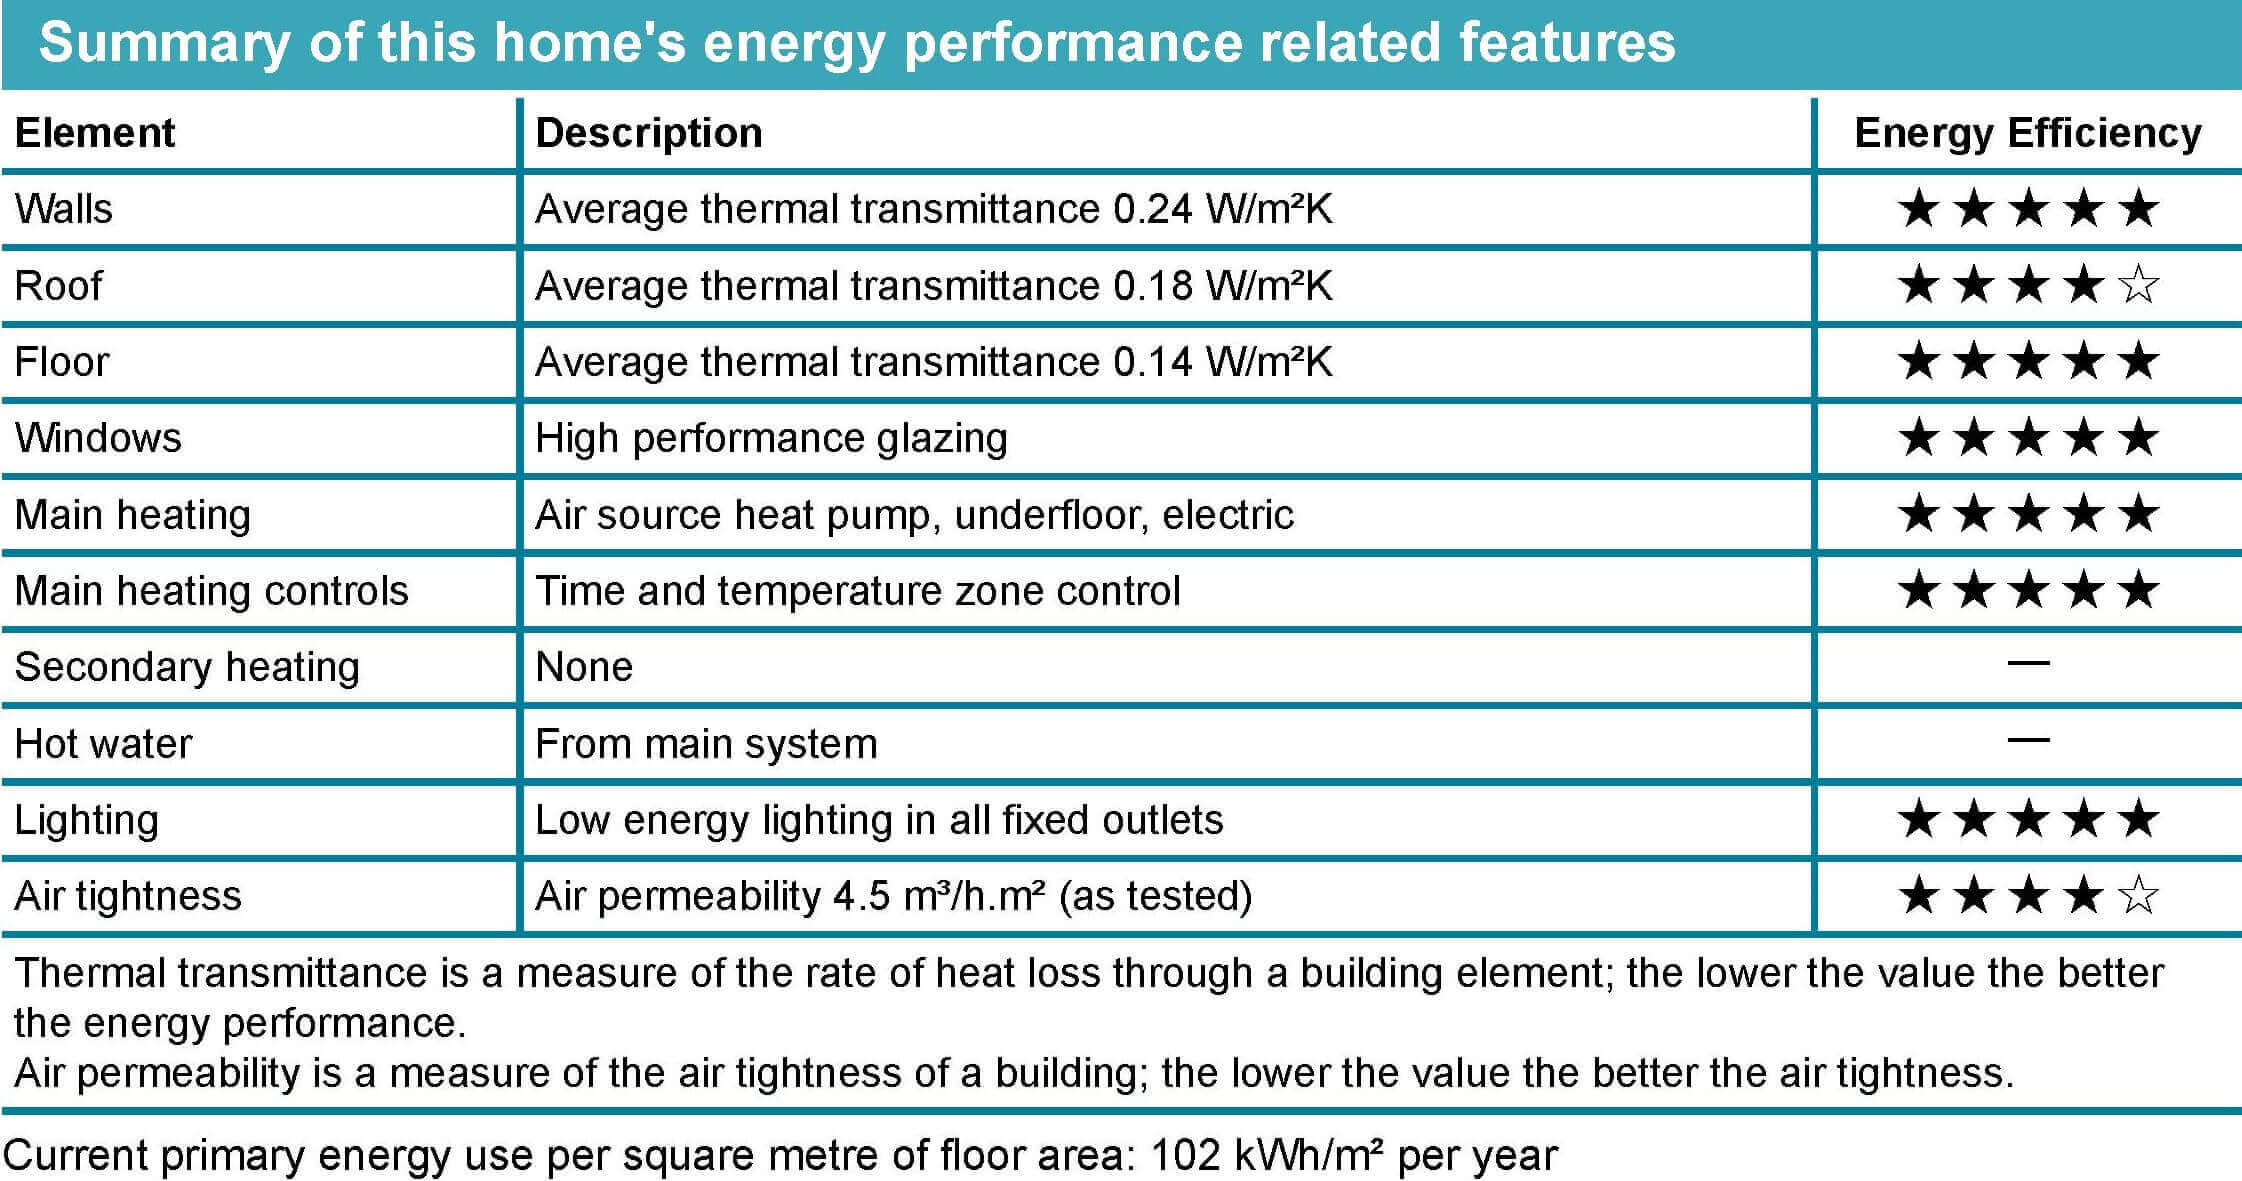 Energy Performance Certificate explained: summary